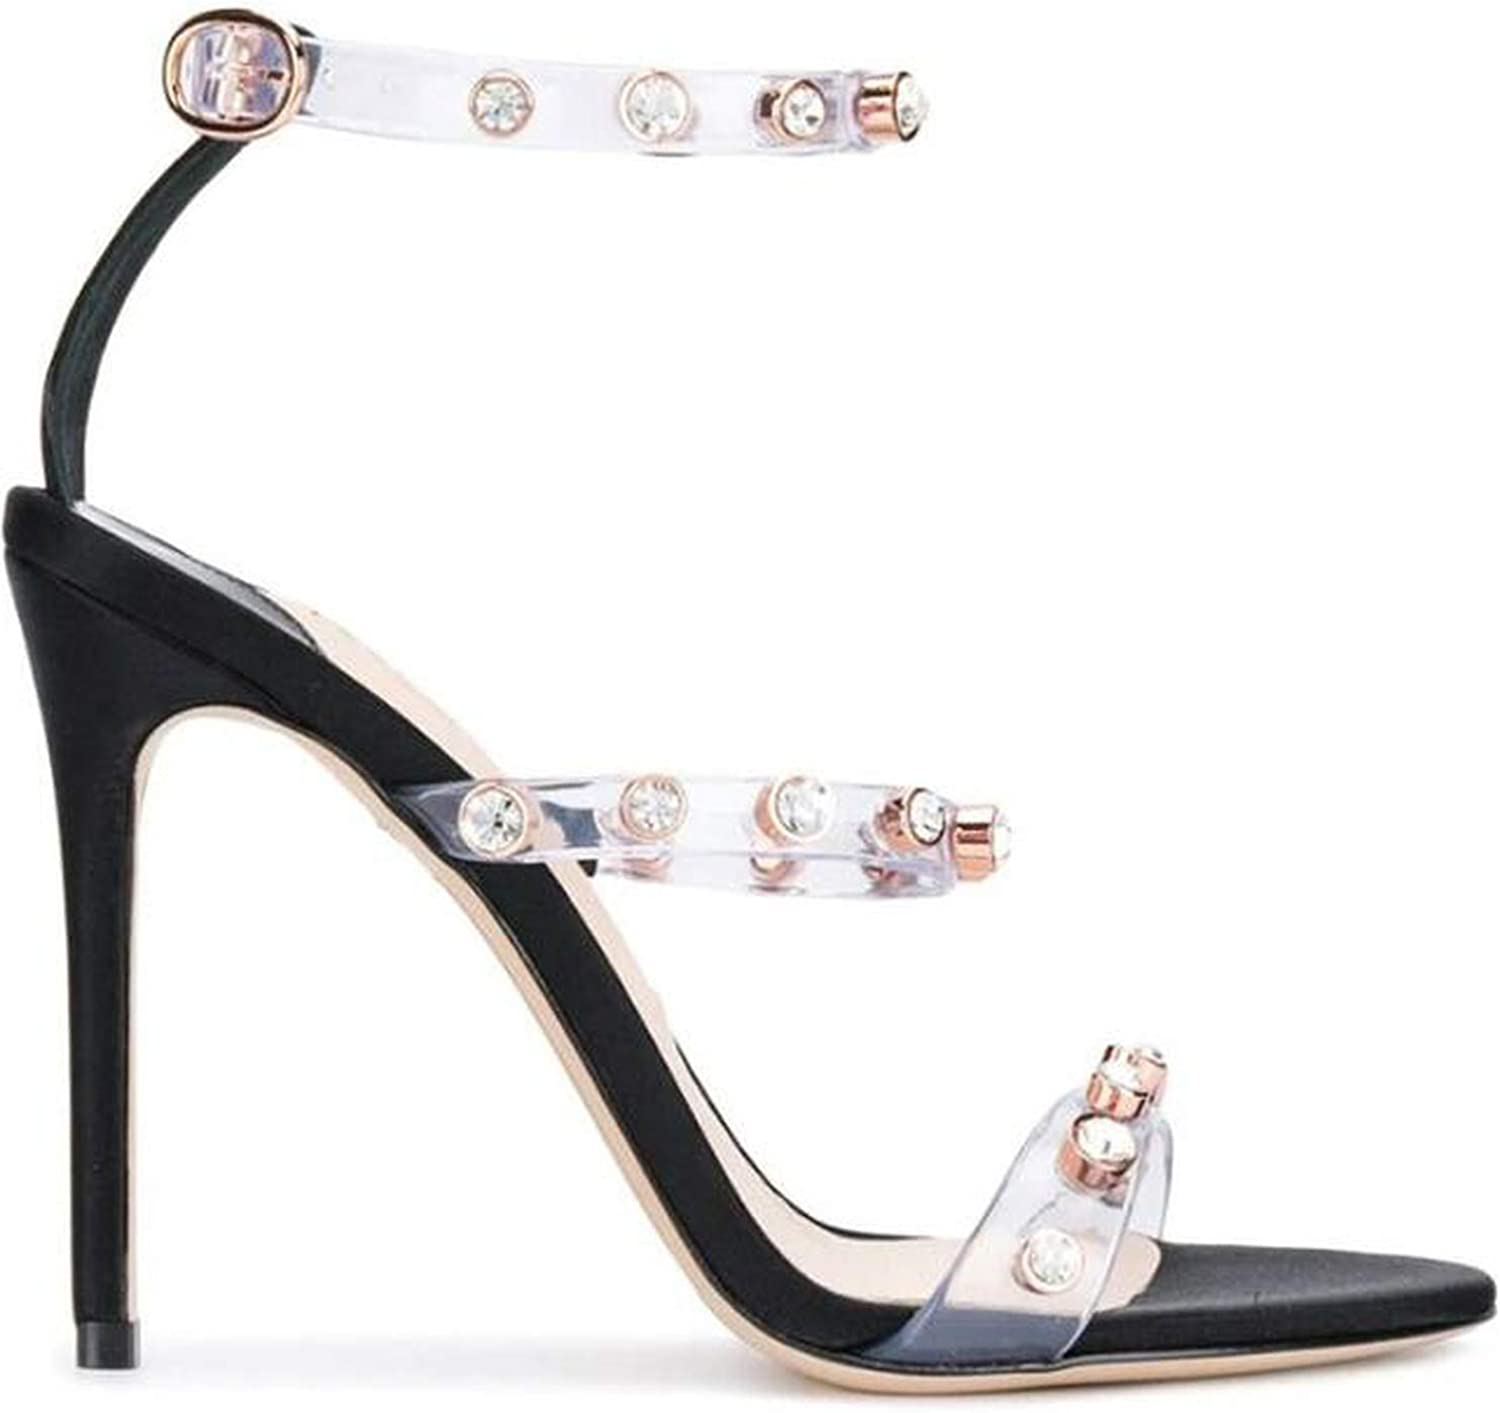 Summer High Heel Sandal Sexy Open Toe Ankle Strap shoes Woman Crystal Rivets Studded PVC Sandal